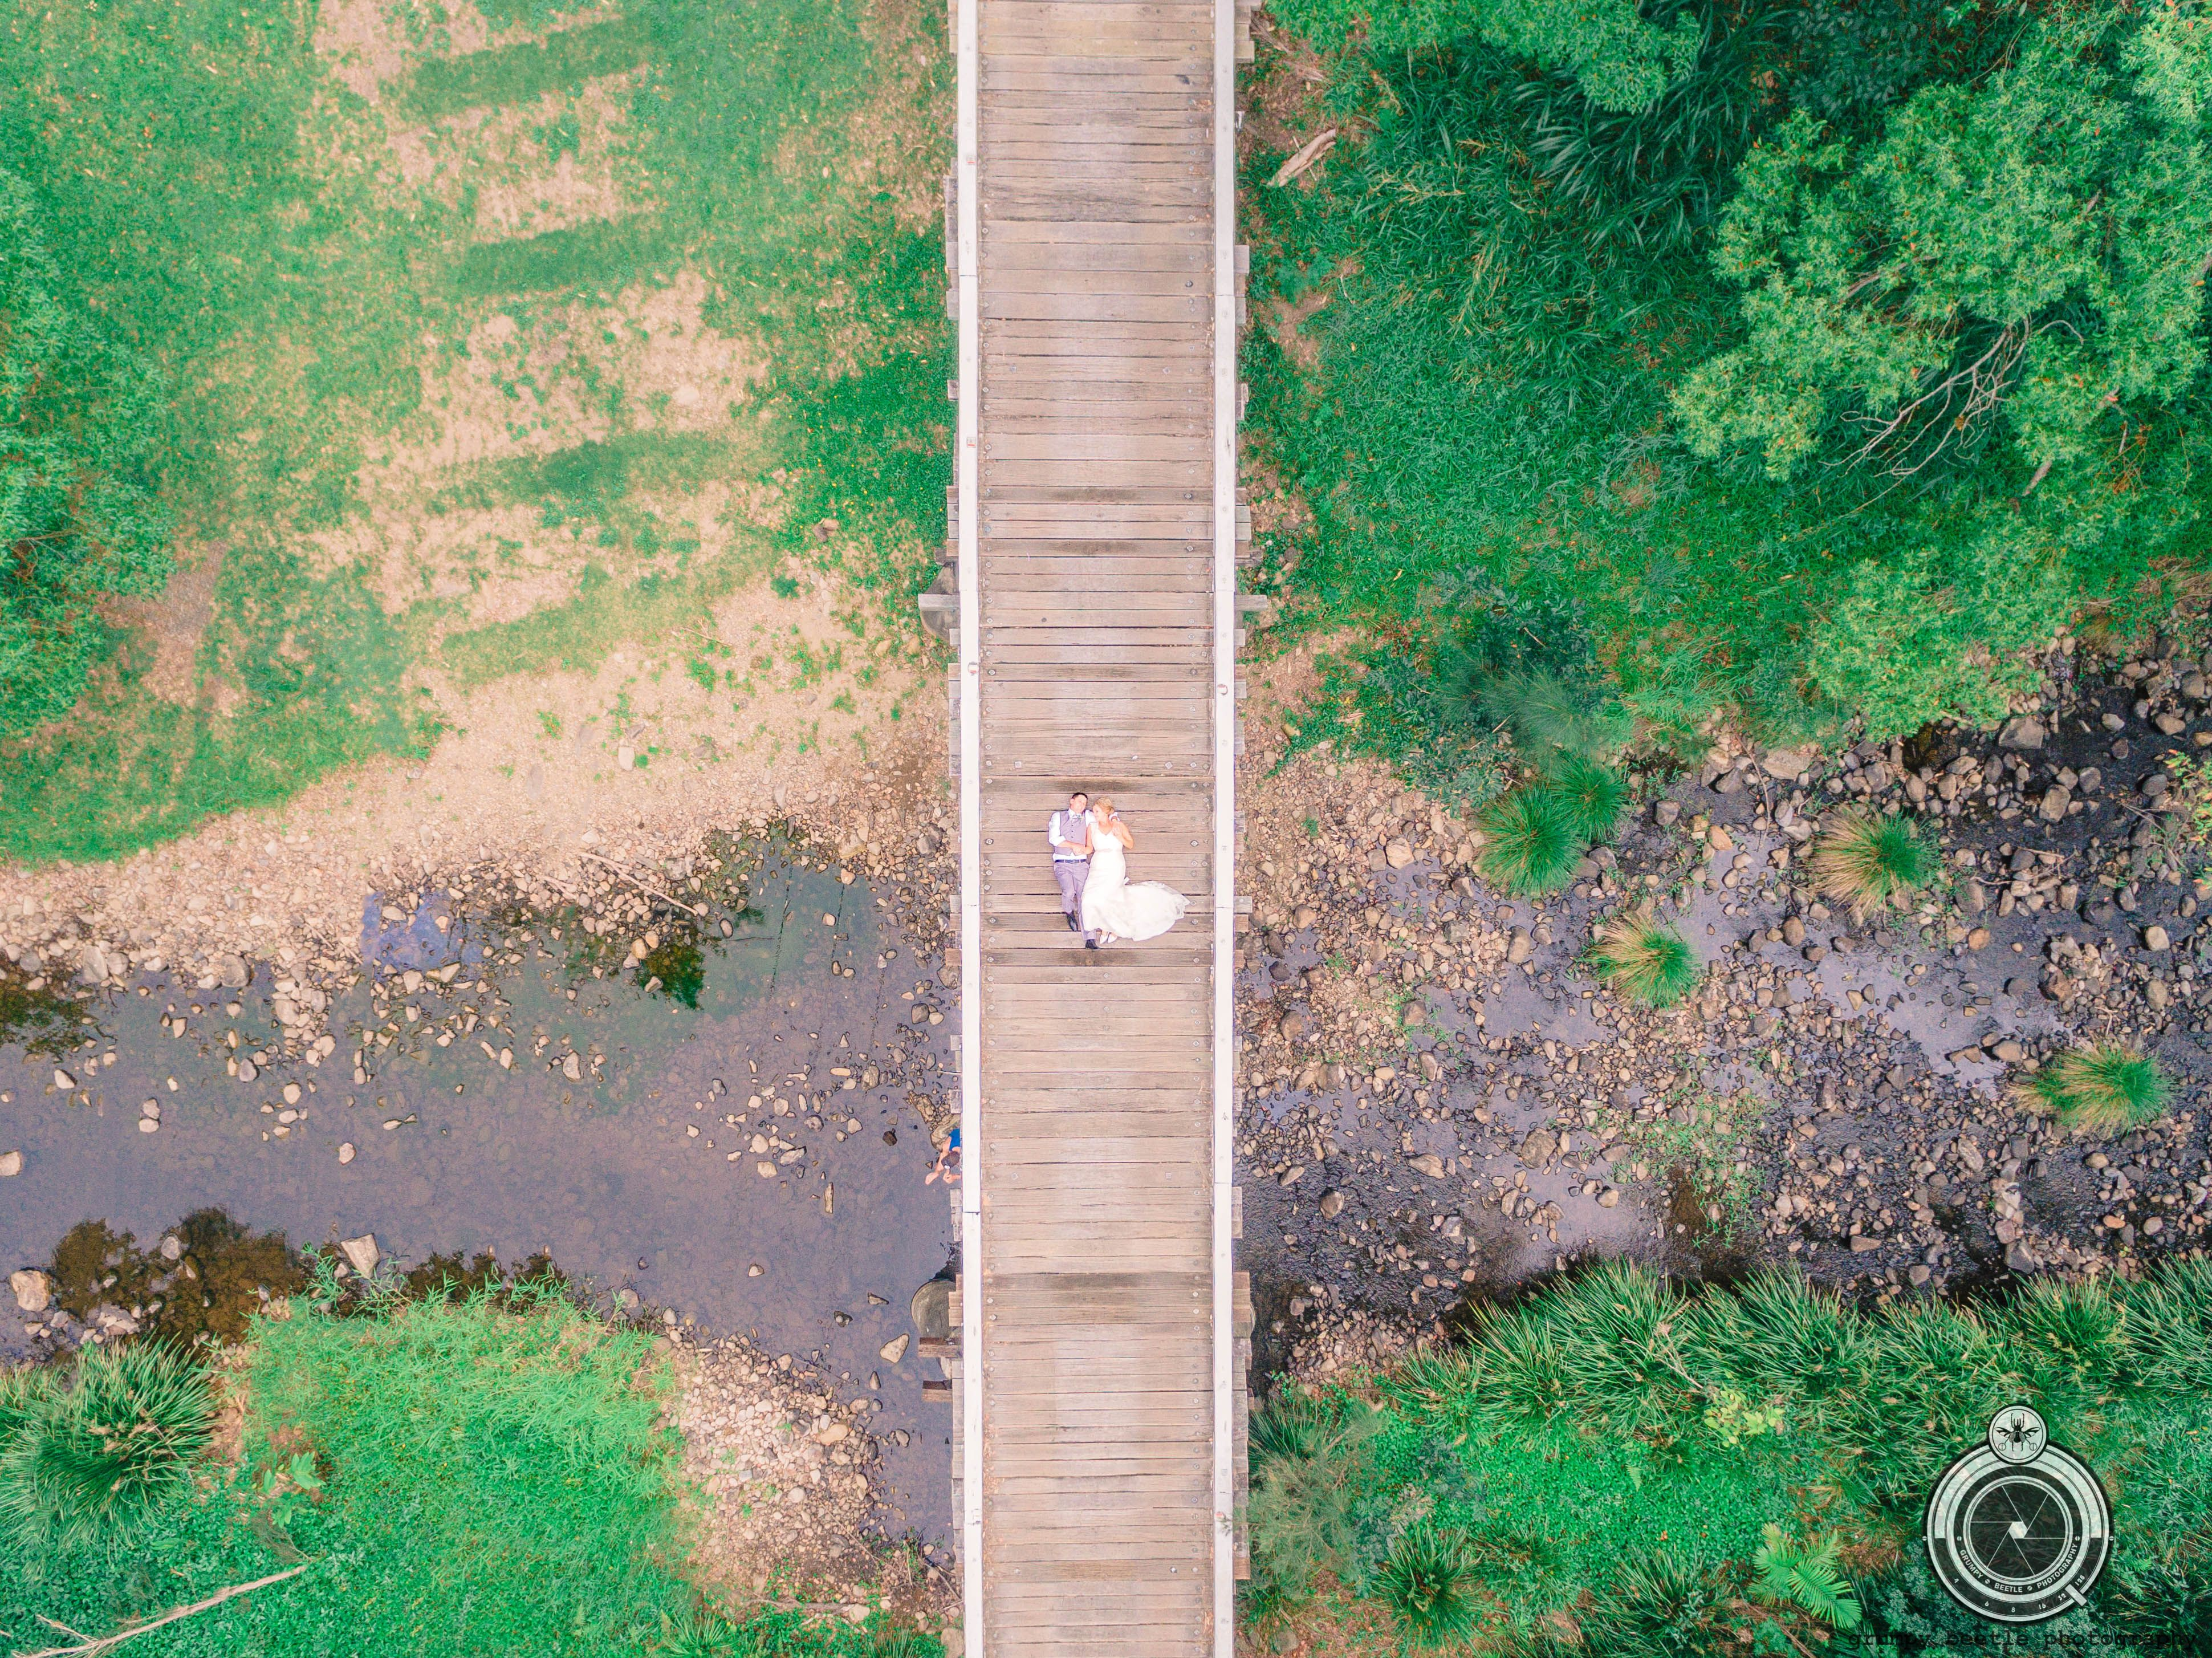 Drone Wedding Photography Drone Photography Wedding Aerial Photography Drone Drone Photography